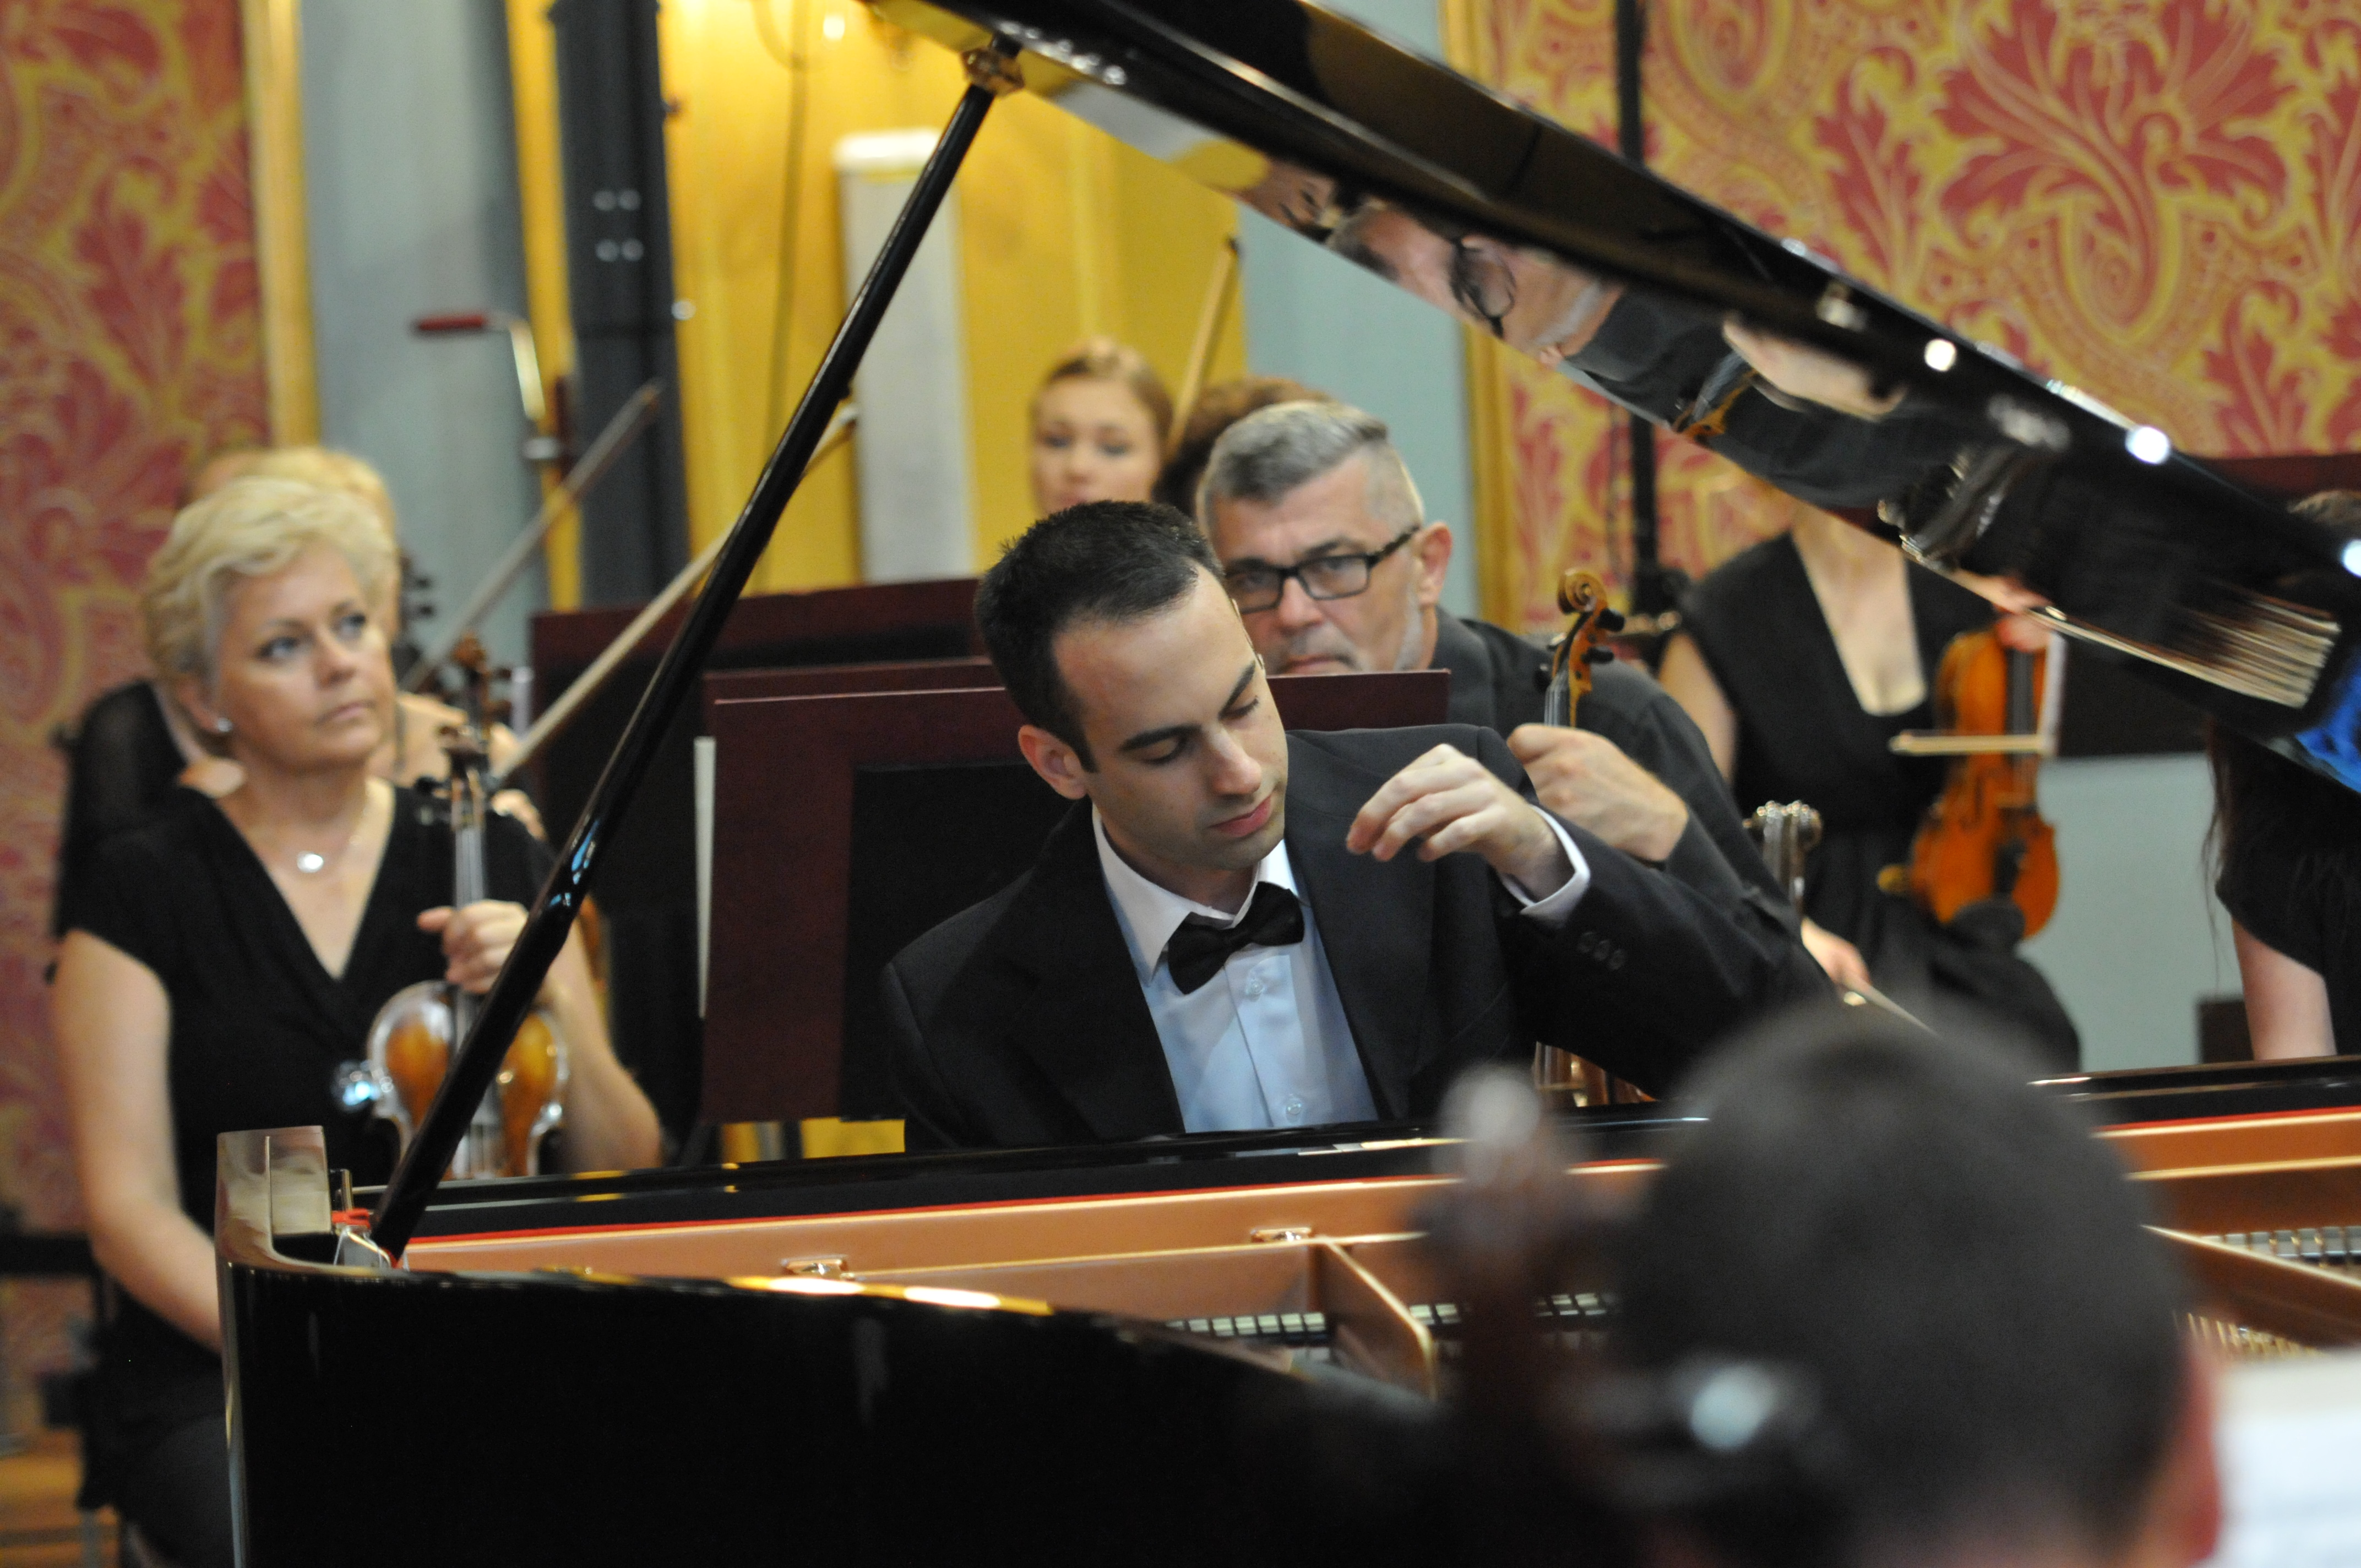 Performing Tchaikovsky's First Piano Concerto in Poland